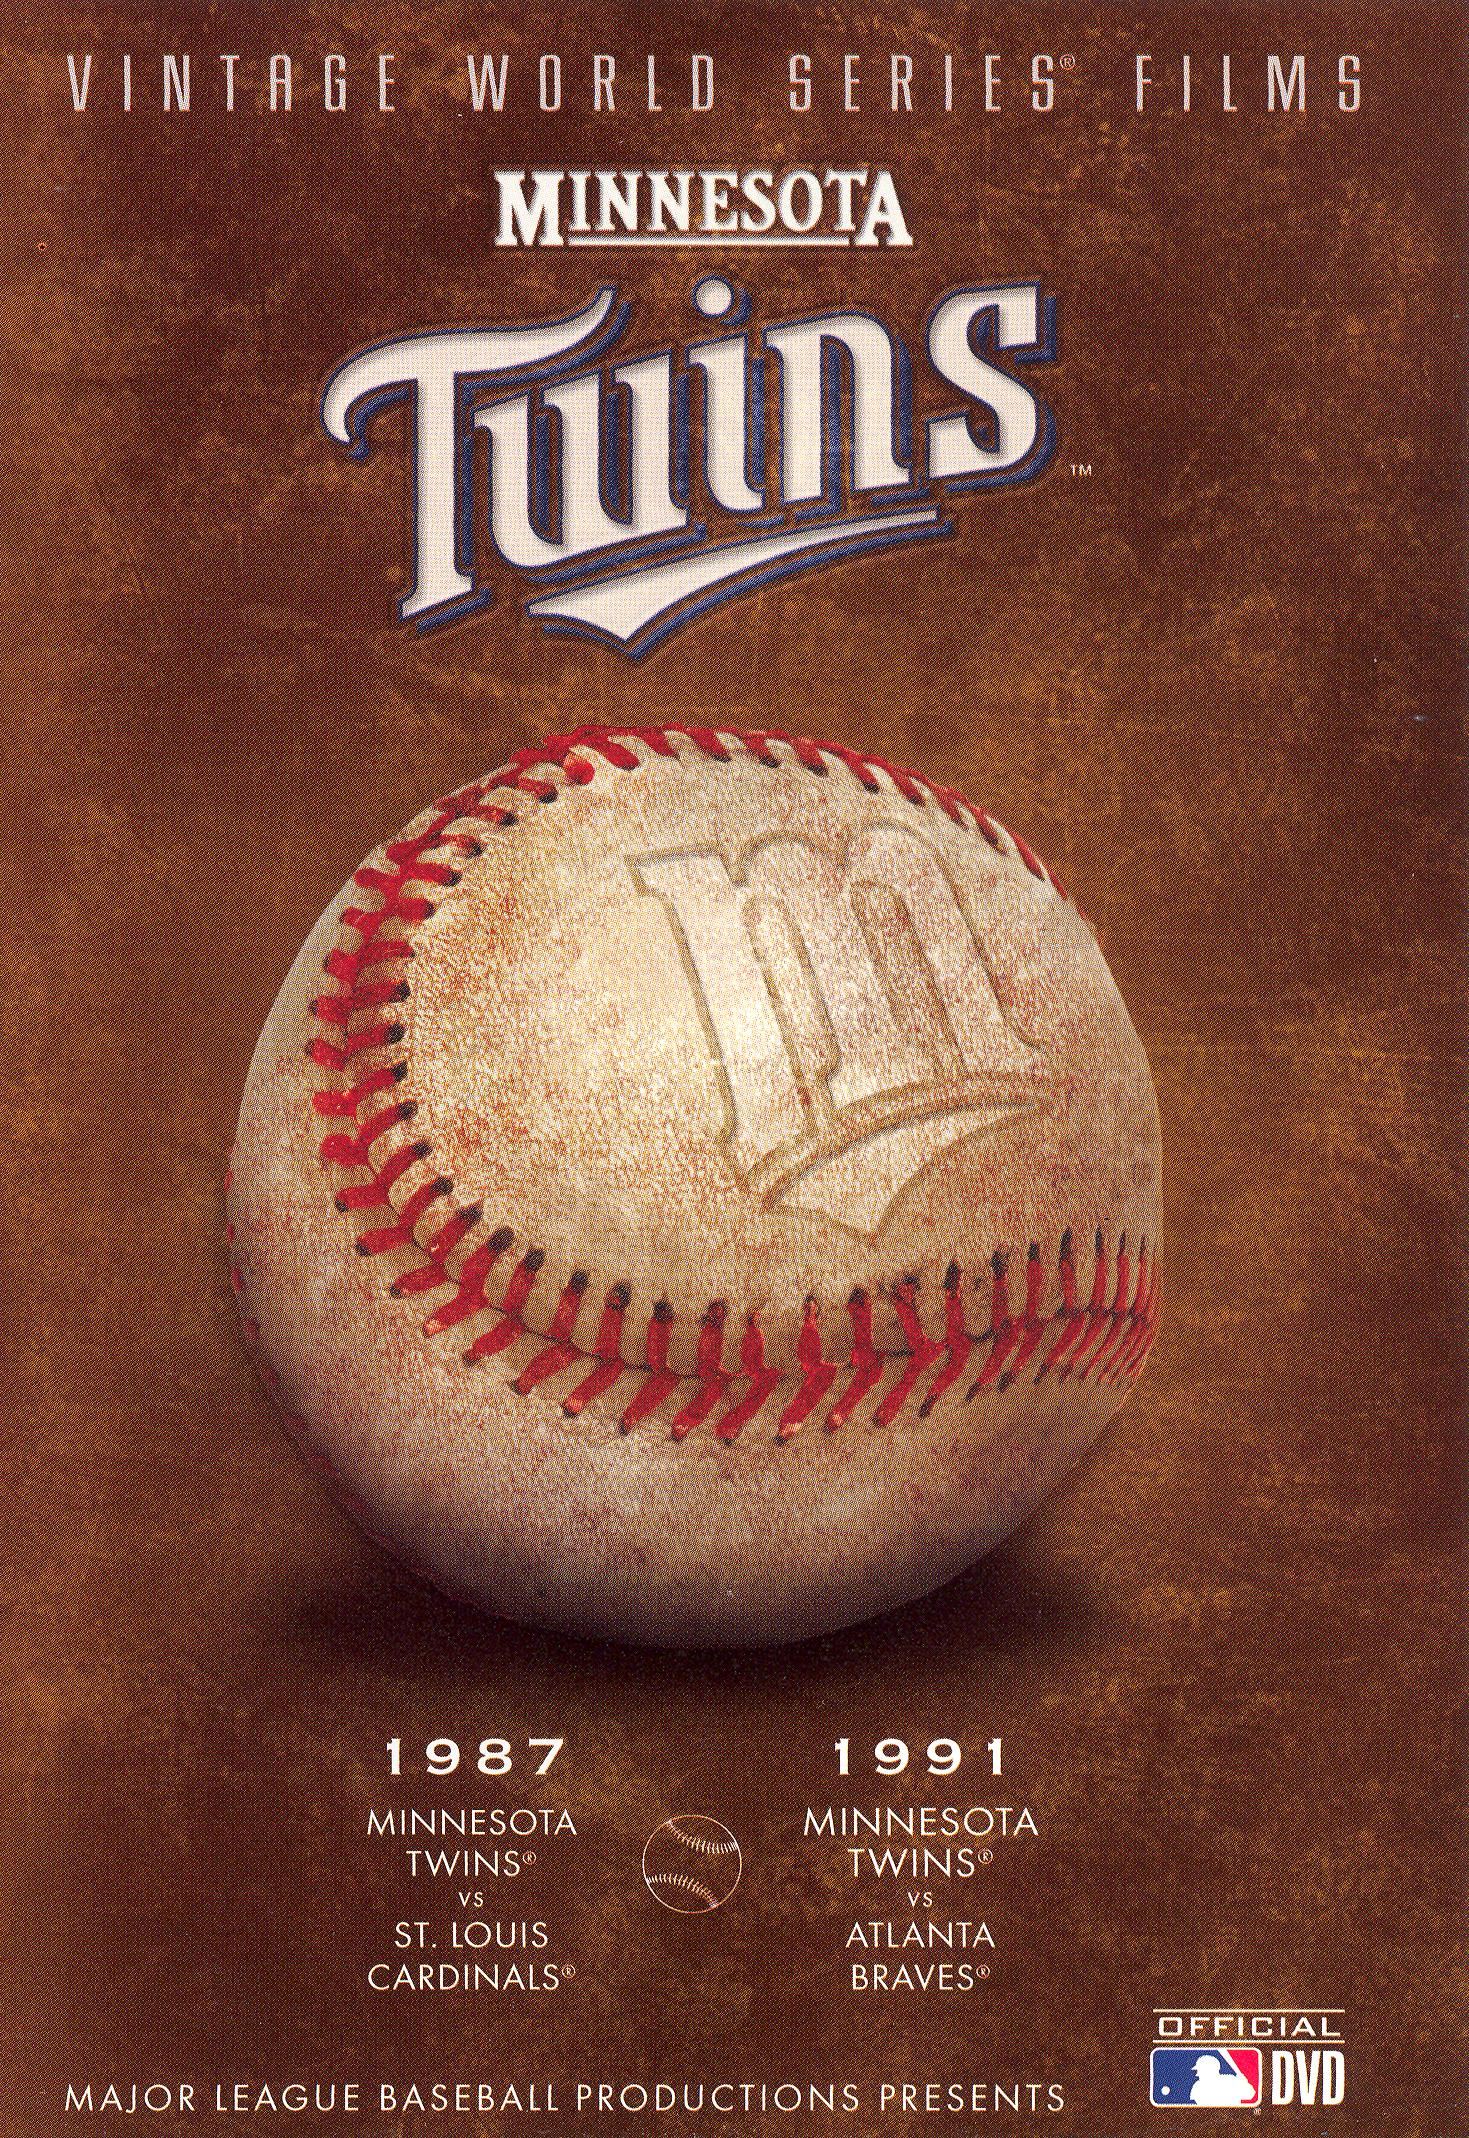 Vintage World Series Films: Minnesota Twins